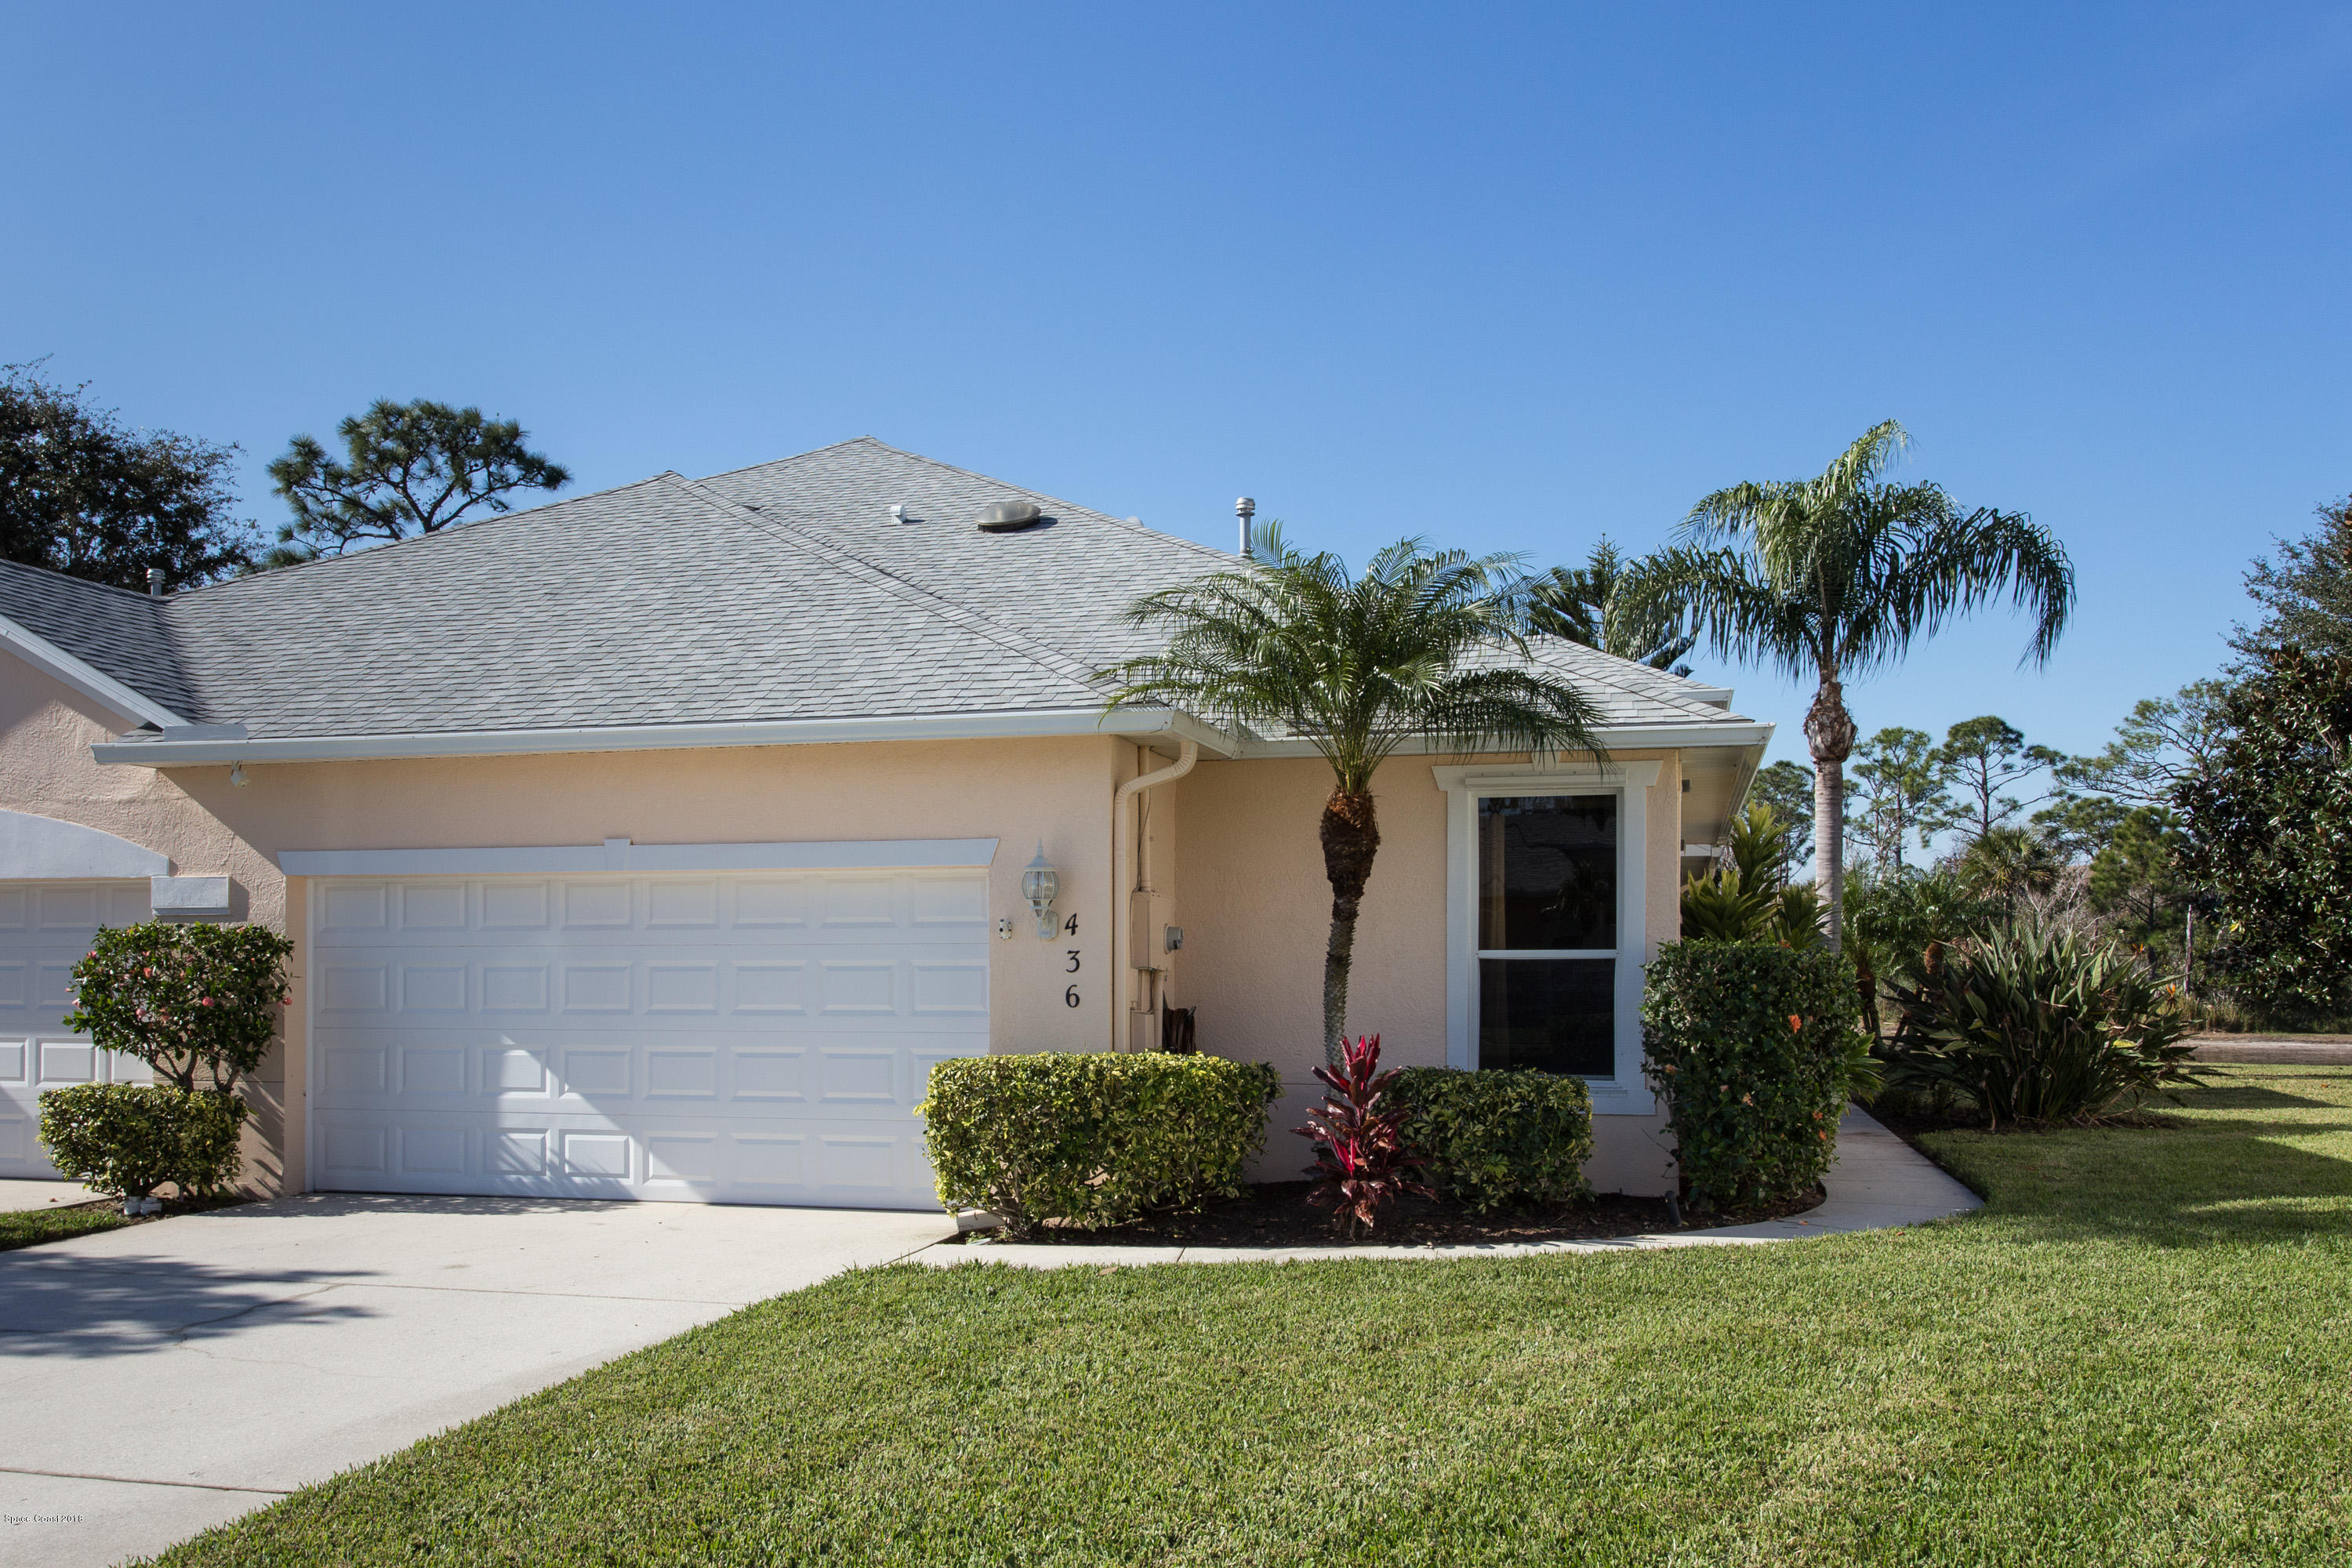 Single Family Home for Sale at 436 Haley 436 Haley Melbourne, Florida 32940 United States